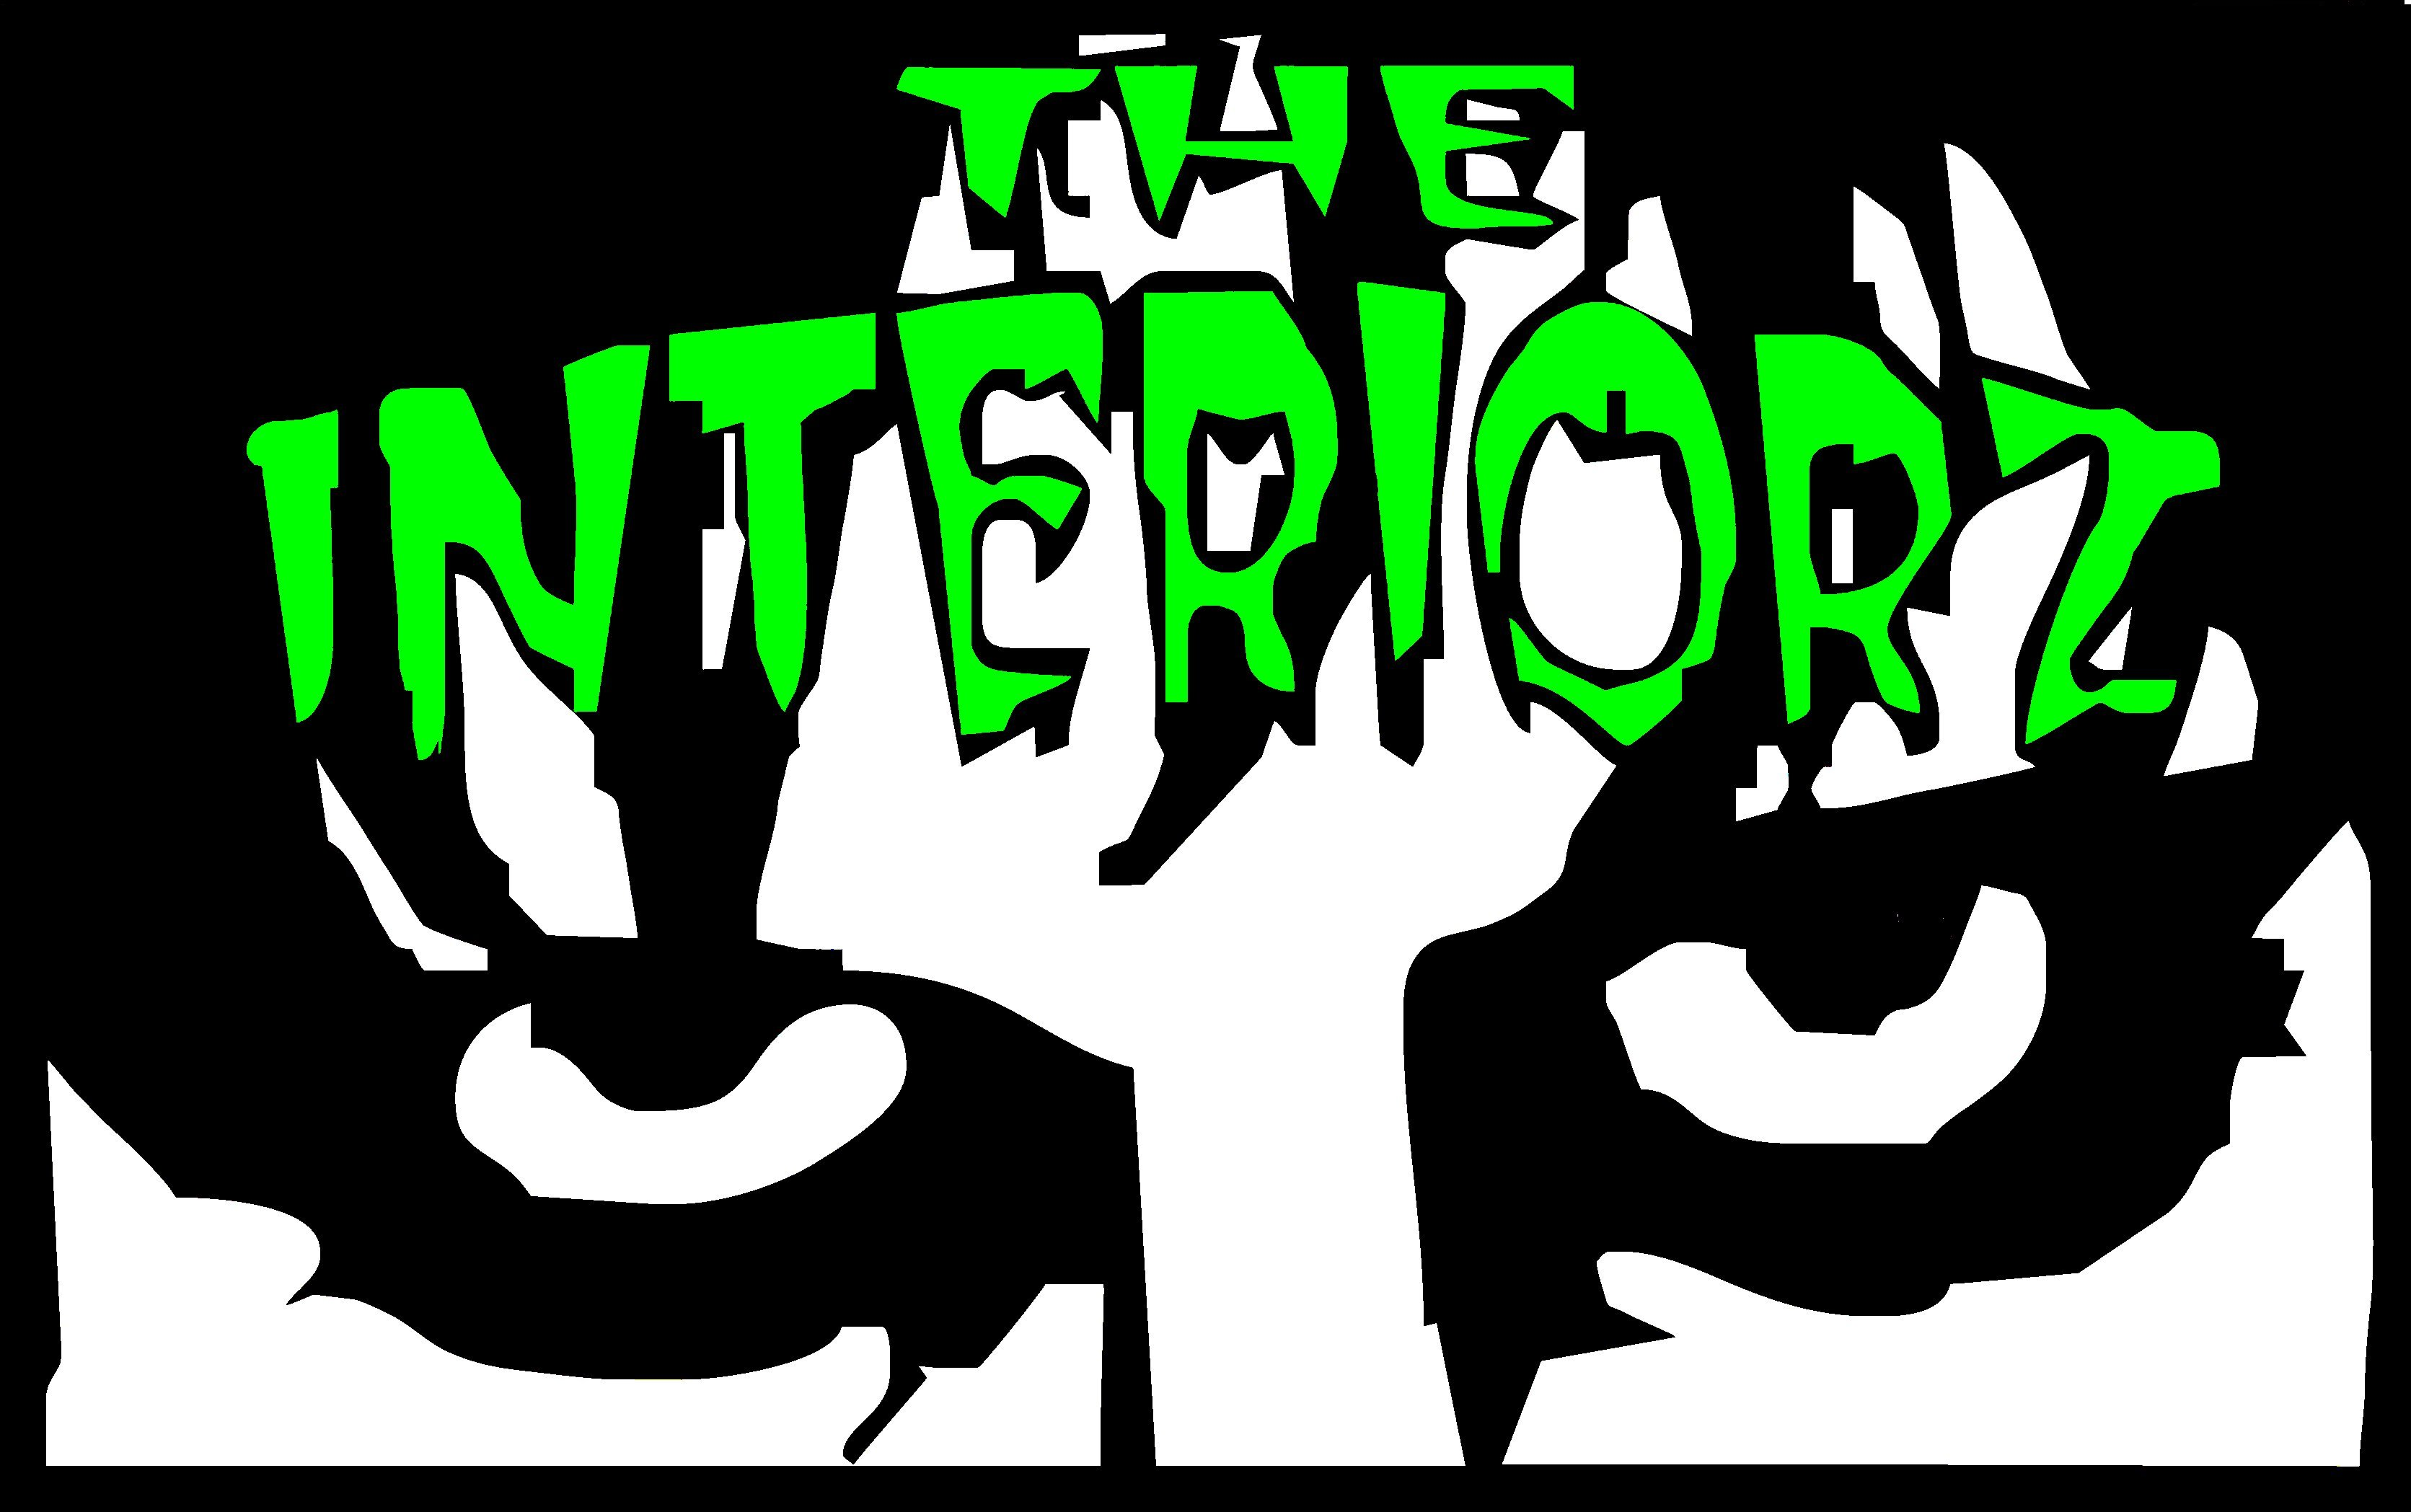 The Interiorz Profile Pic